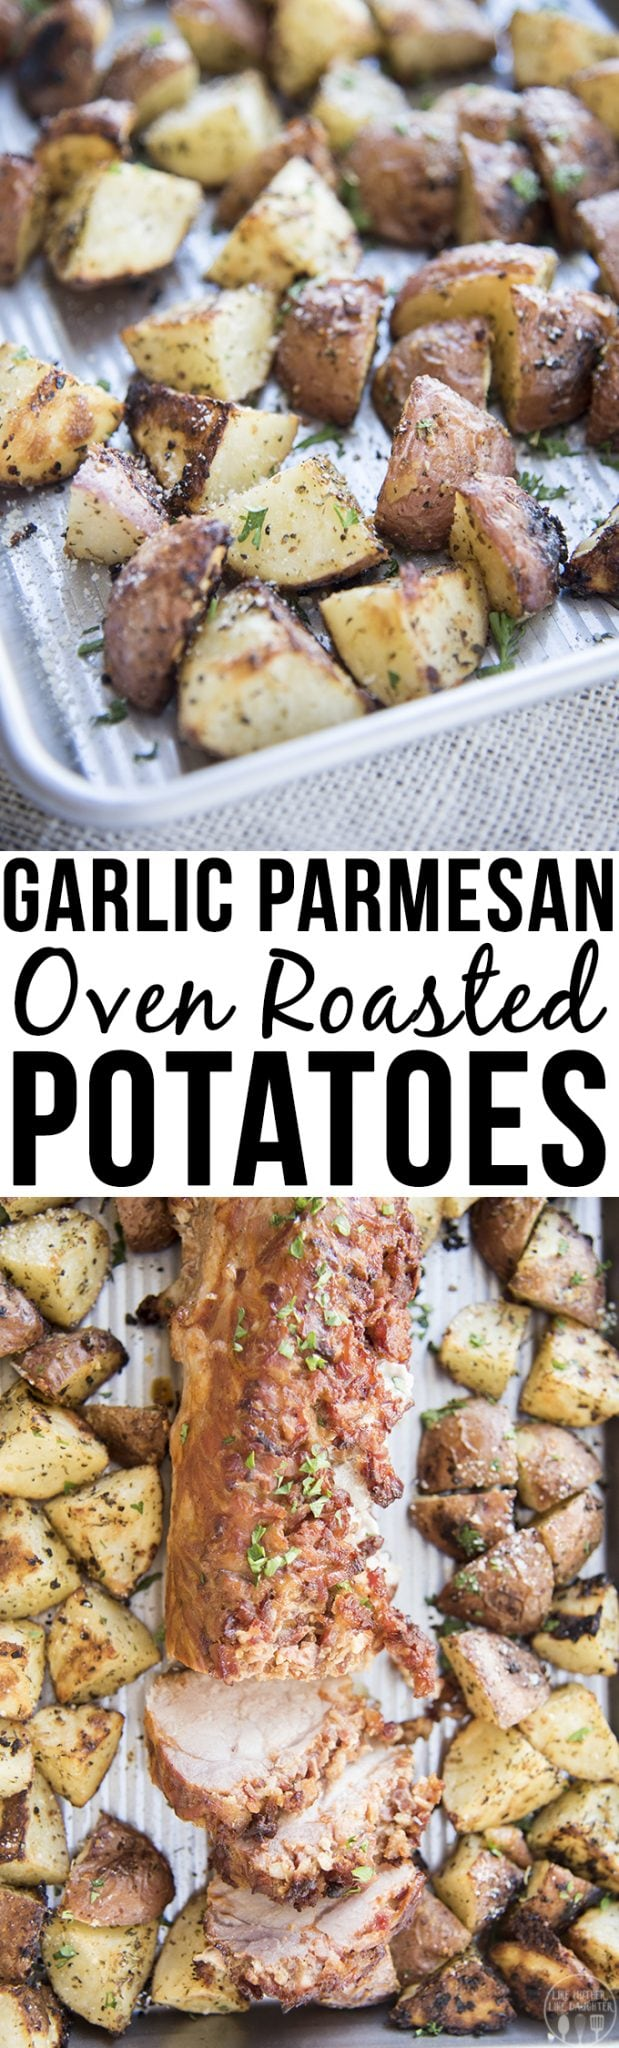 These garlic parmesan oven roasted potatoes are the perfect 30 minute side dish. Crispy tender potatoes seasoned to perfection these are the perfect side to any of your favorite dinner recipes!